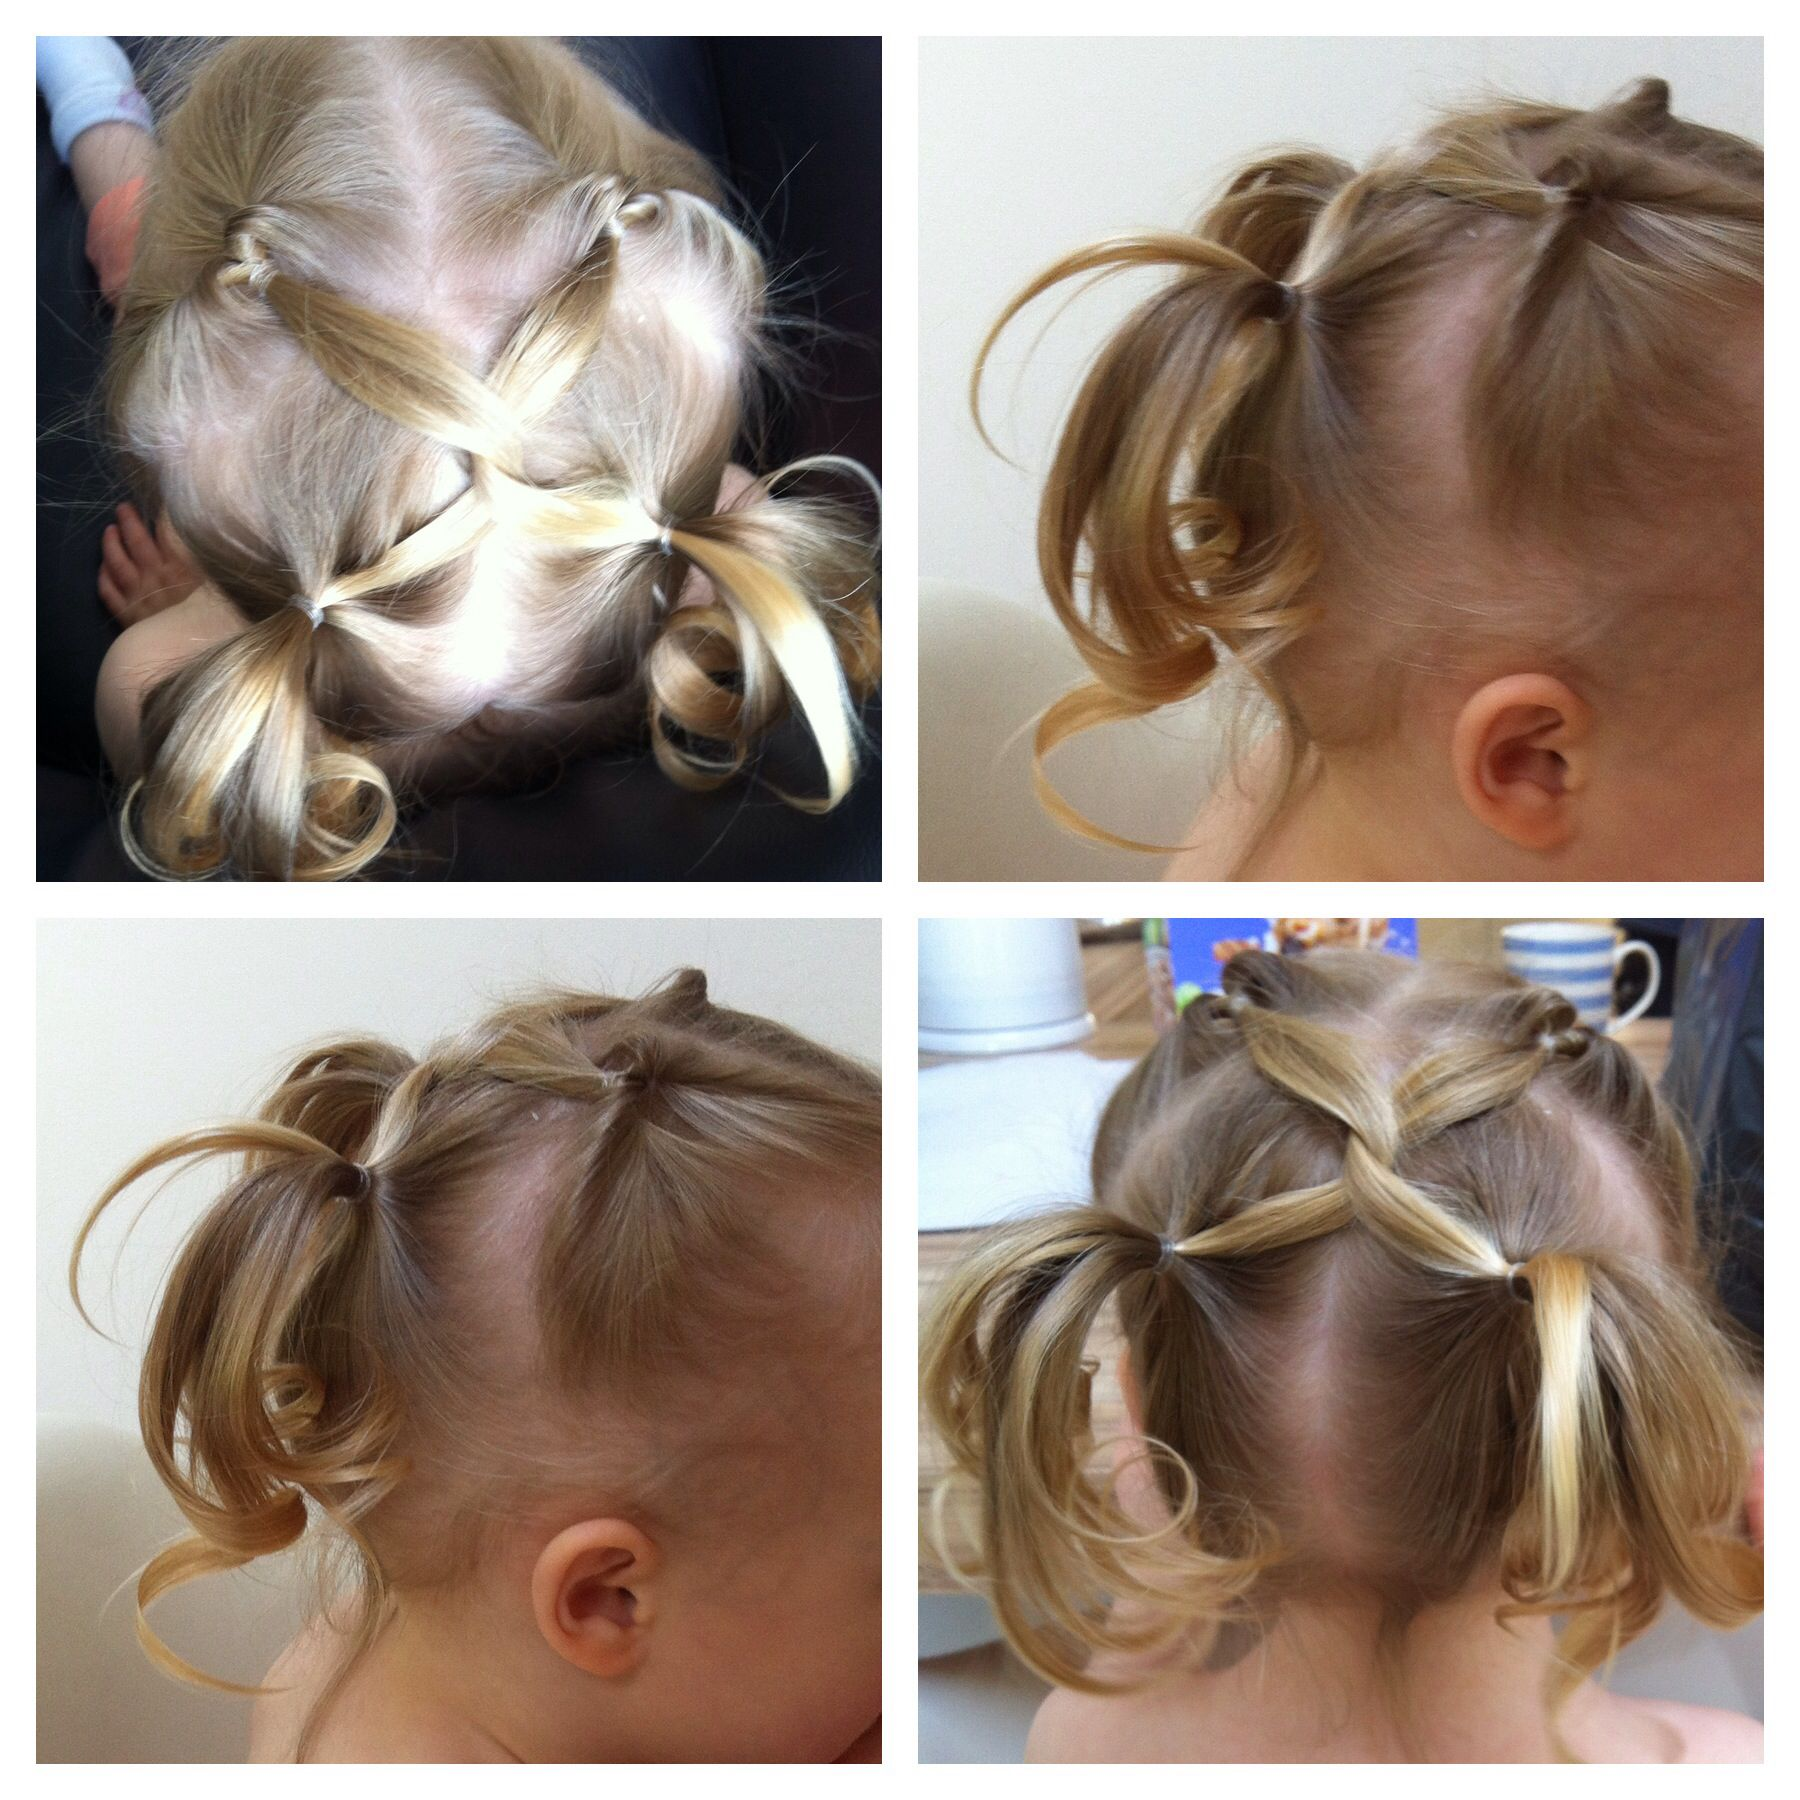 Pin by Kaylee Nelsen on Toddler & Baby Hair Styles & Ideas ...